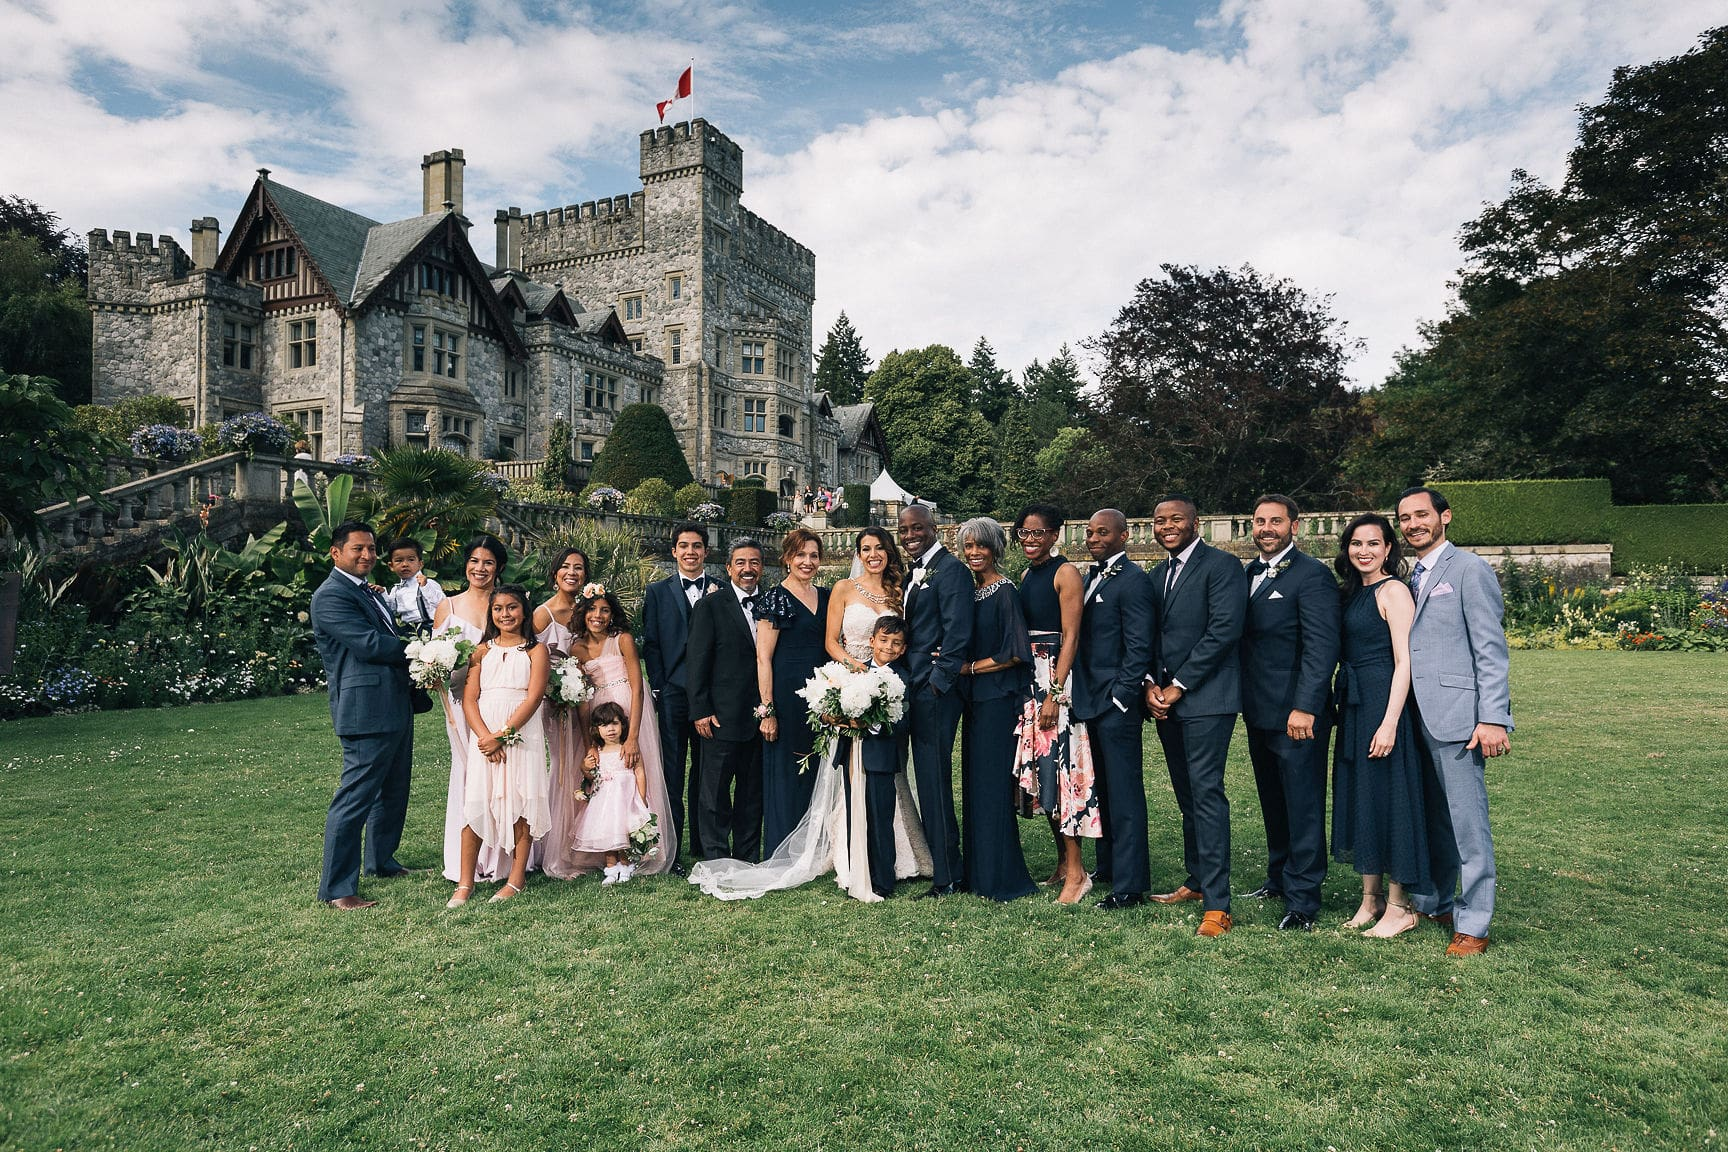 Family formal at Hatley Castle Victoria BC bride holding dress, taken by Marlboro Wang Photo for Focal bookfocal.com